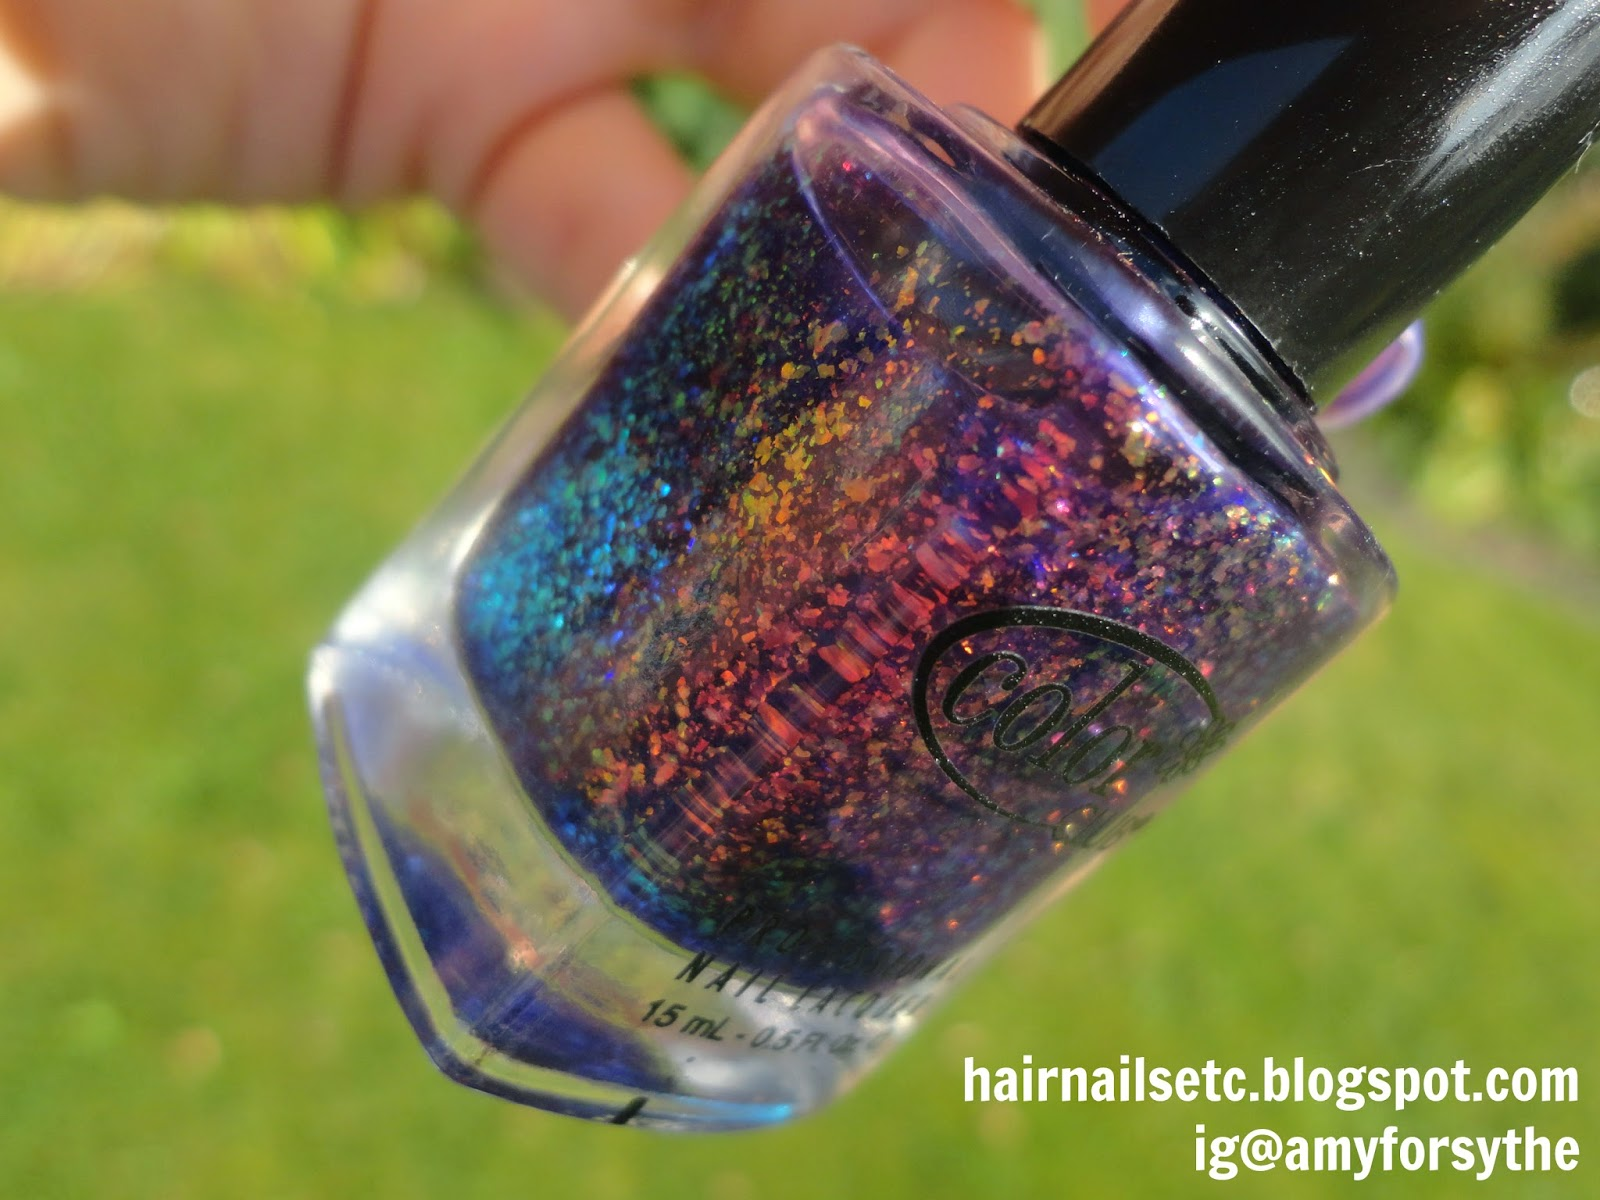 Swatch and Review of Color Club Nail Lacquer in The Uptown from Girl About Town Collection, Fall 2013